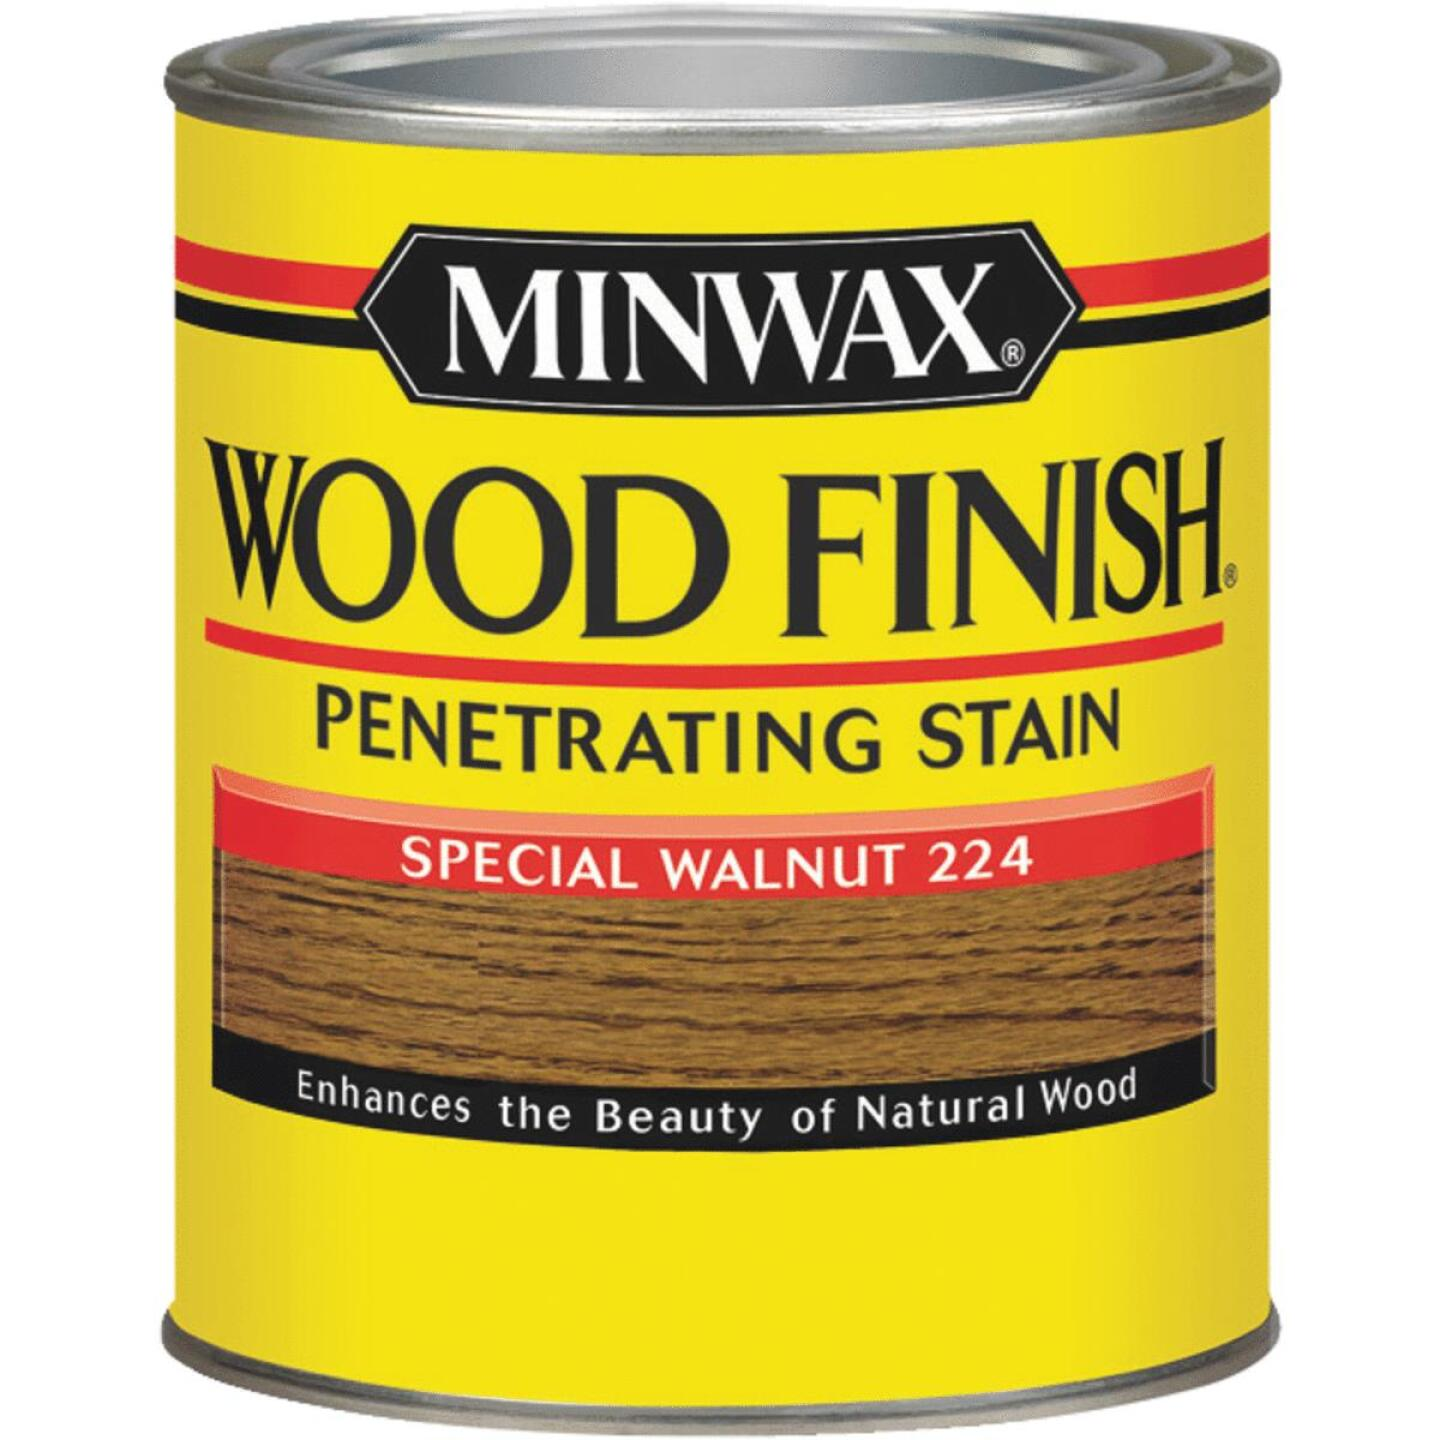 Minwax Wood Finish Penetrating Stain, Special Walnut, 1/2 Pt. Image 1